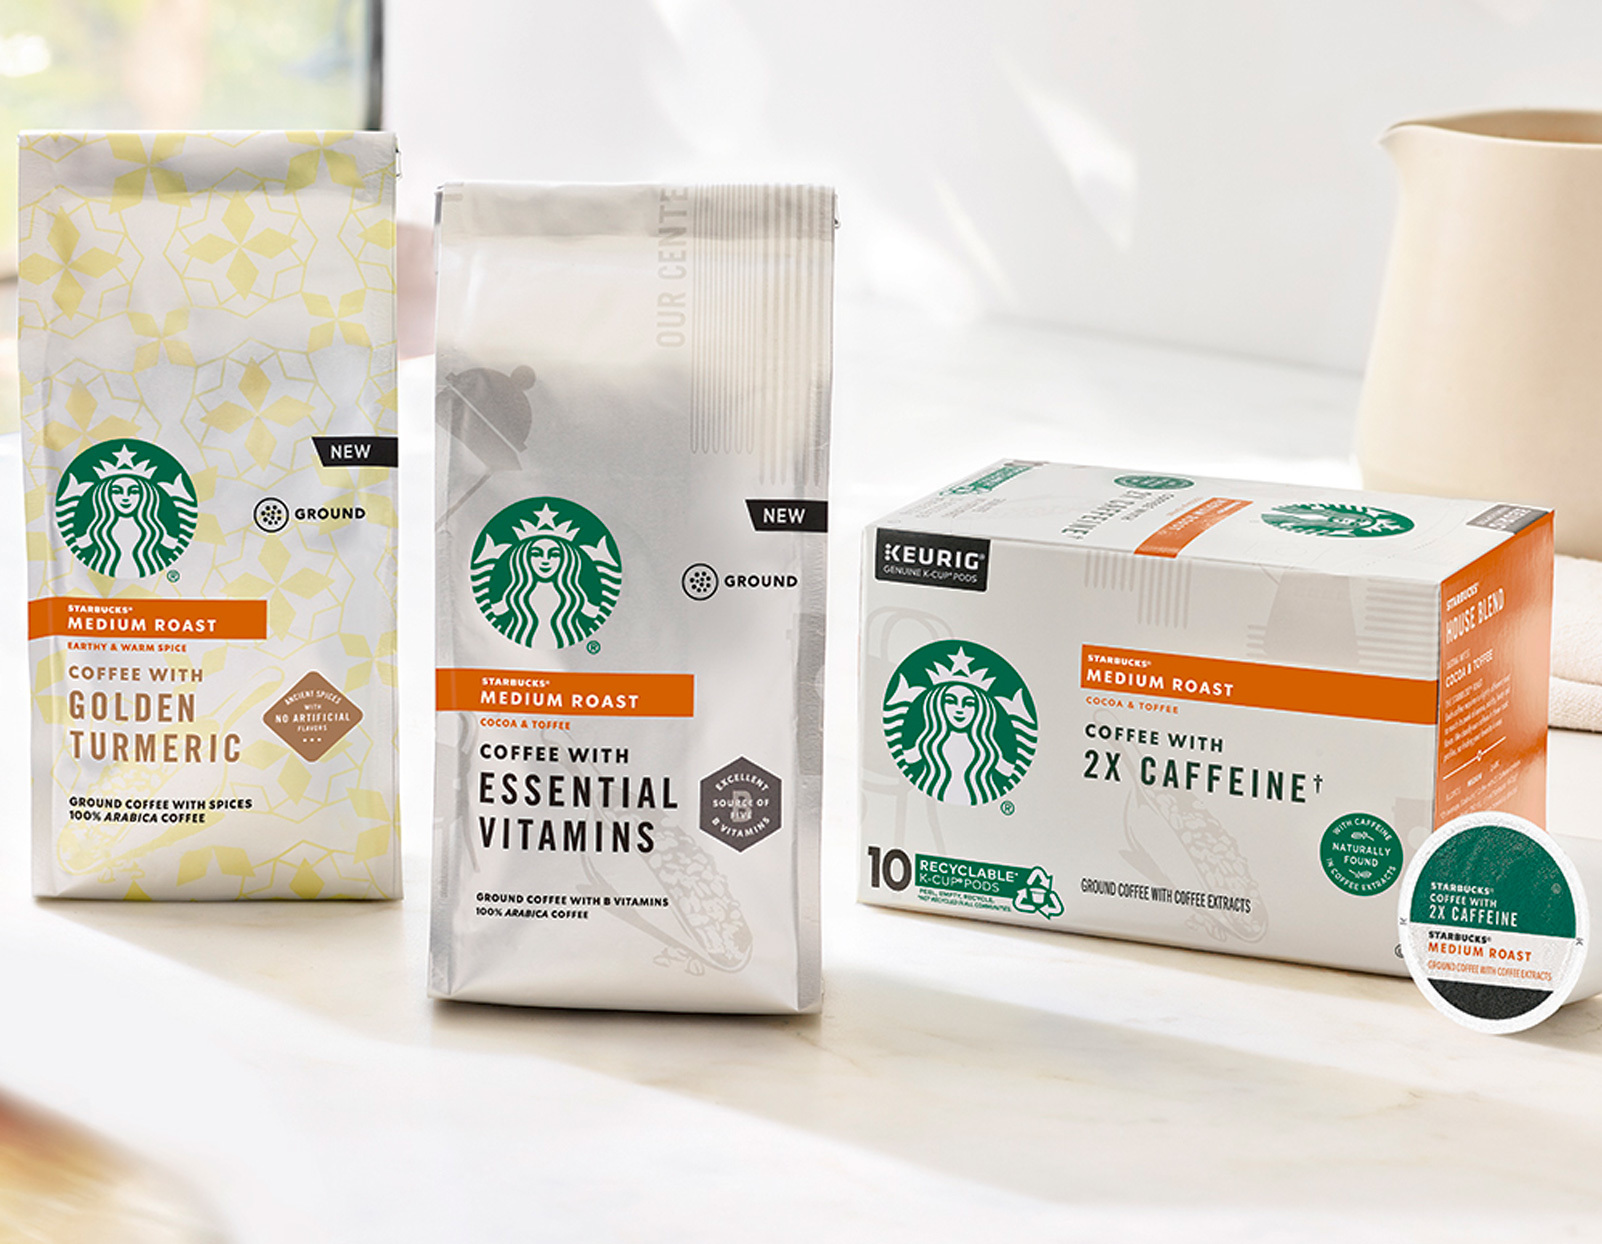 Starbucks Announces They Will Be Selling Fortified Coffee with Vitamins, Turmeric and Double Caffeine